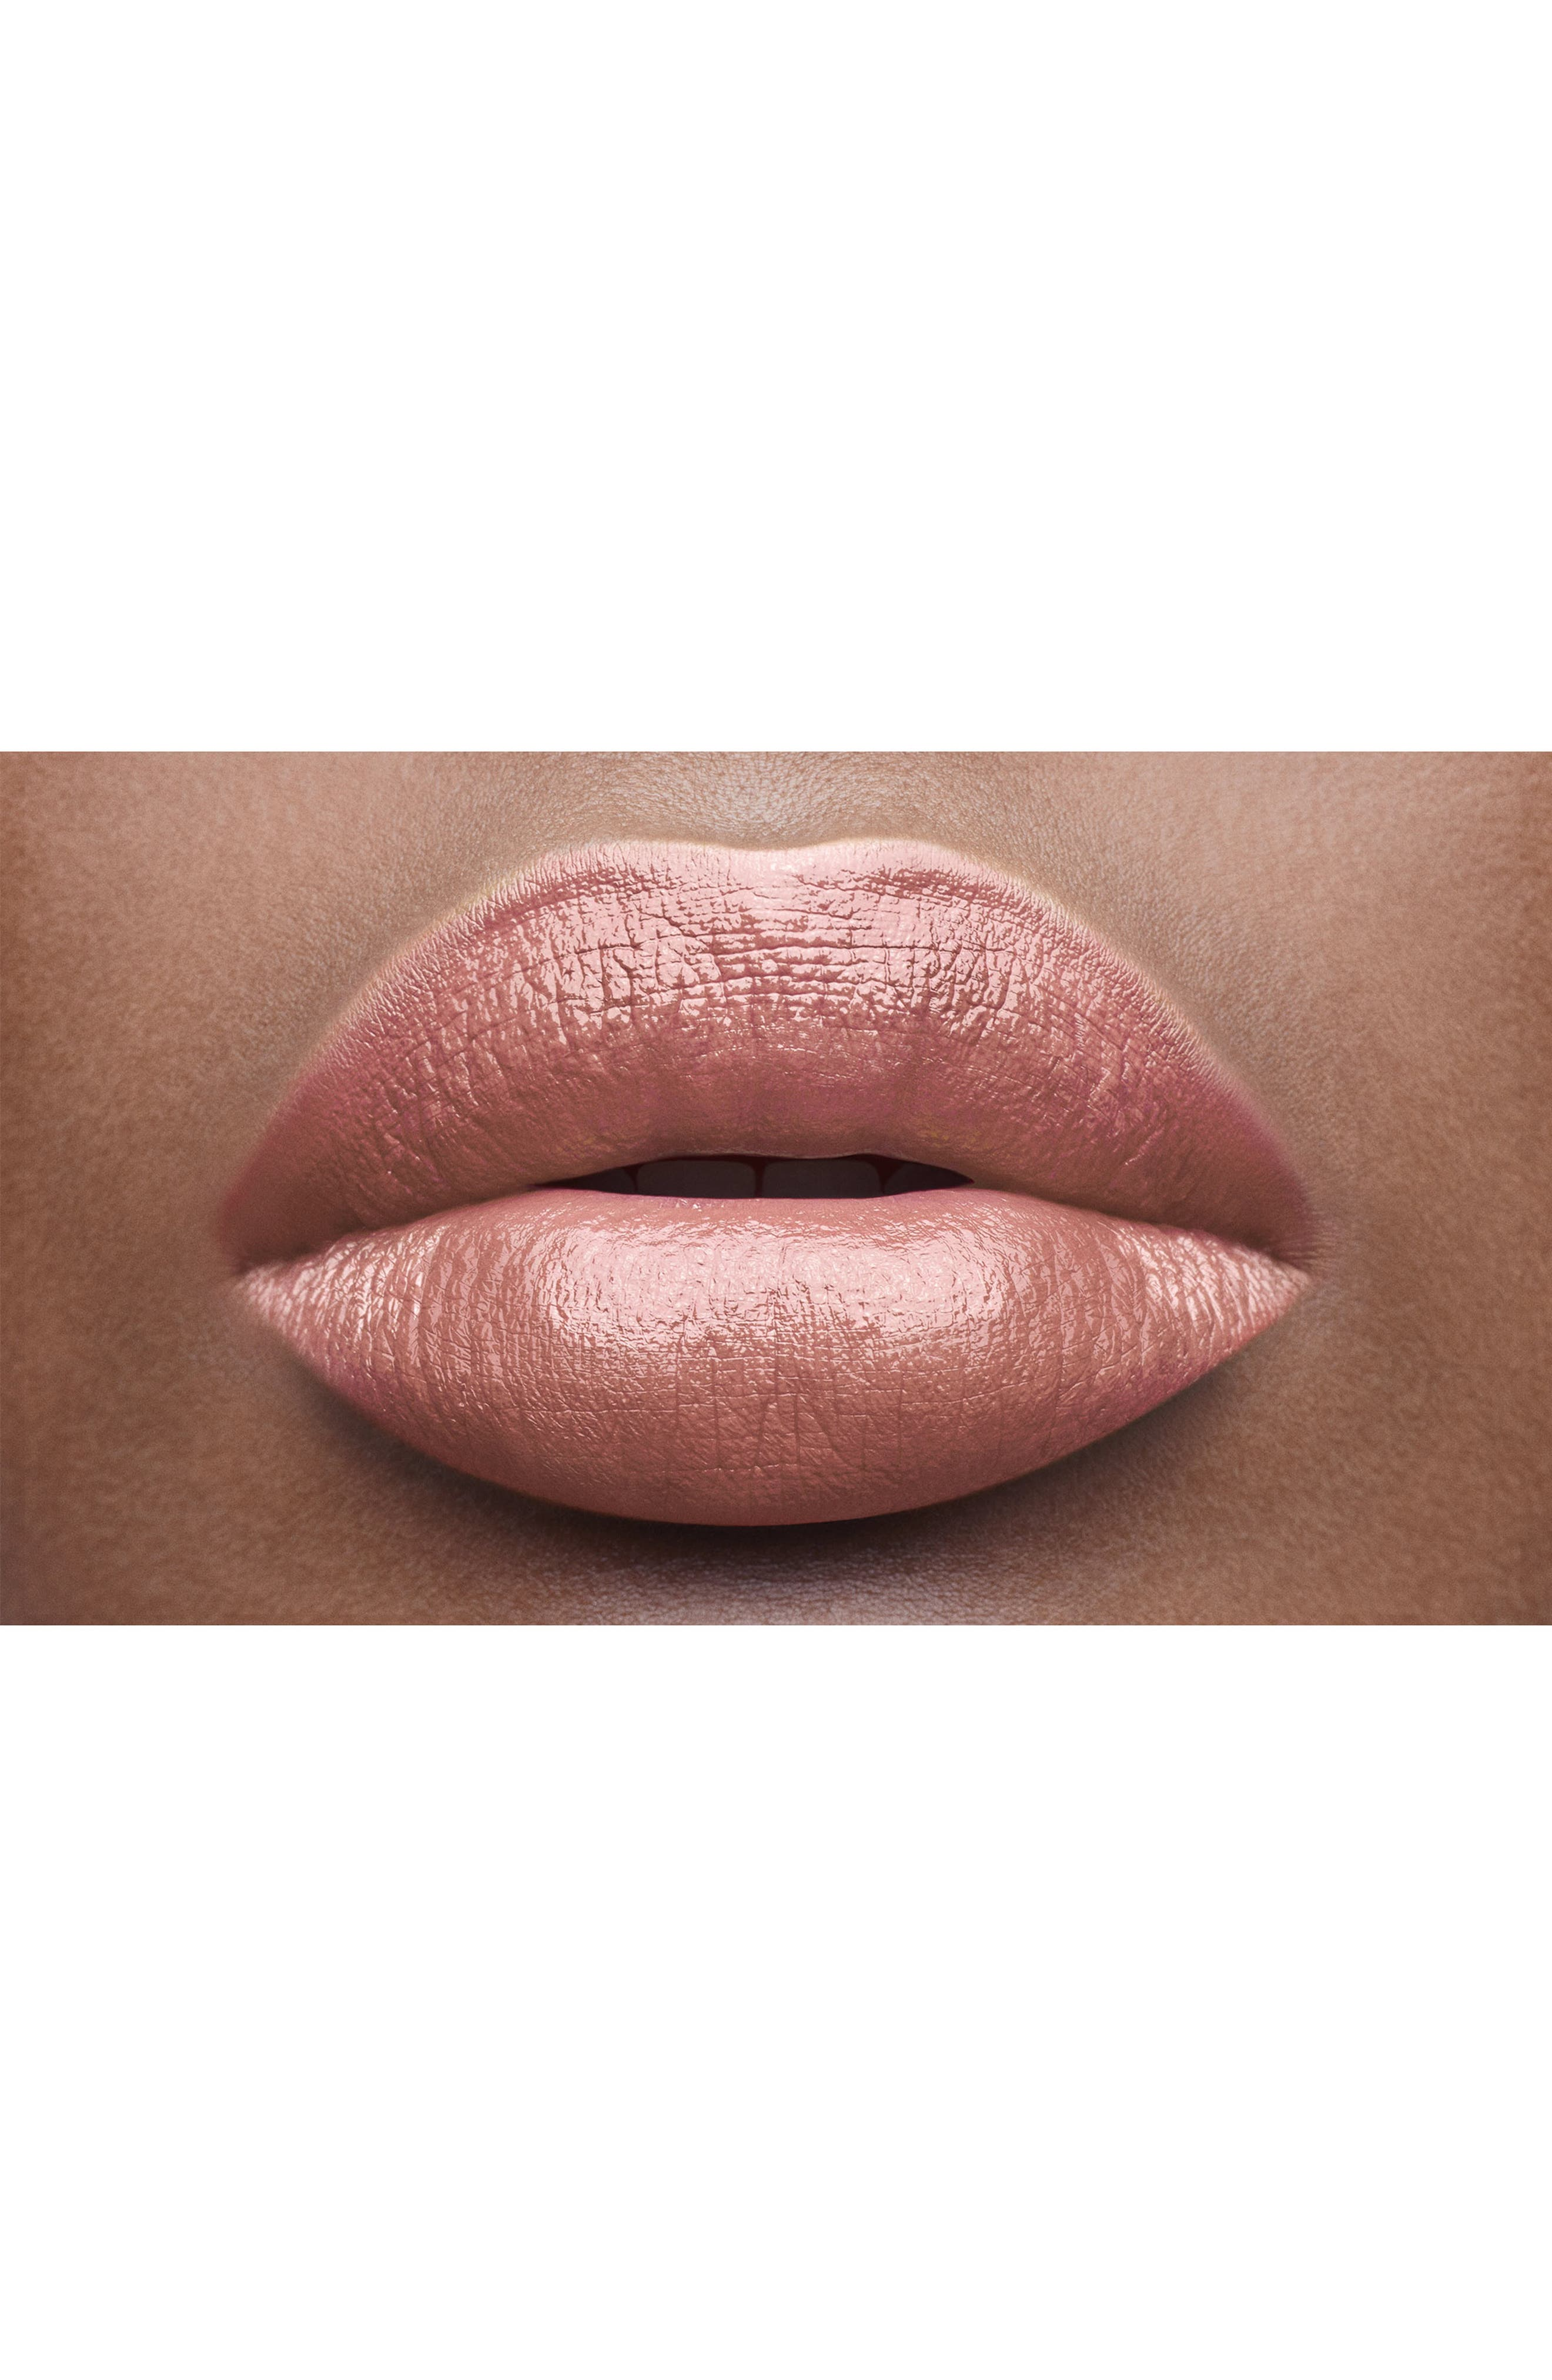 Rouge Pur Couture Gold Attraction Collection Lipstick,                             Alternate thumbnail 2, color,                             070 LE NU